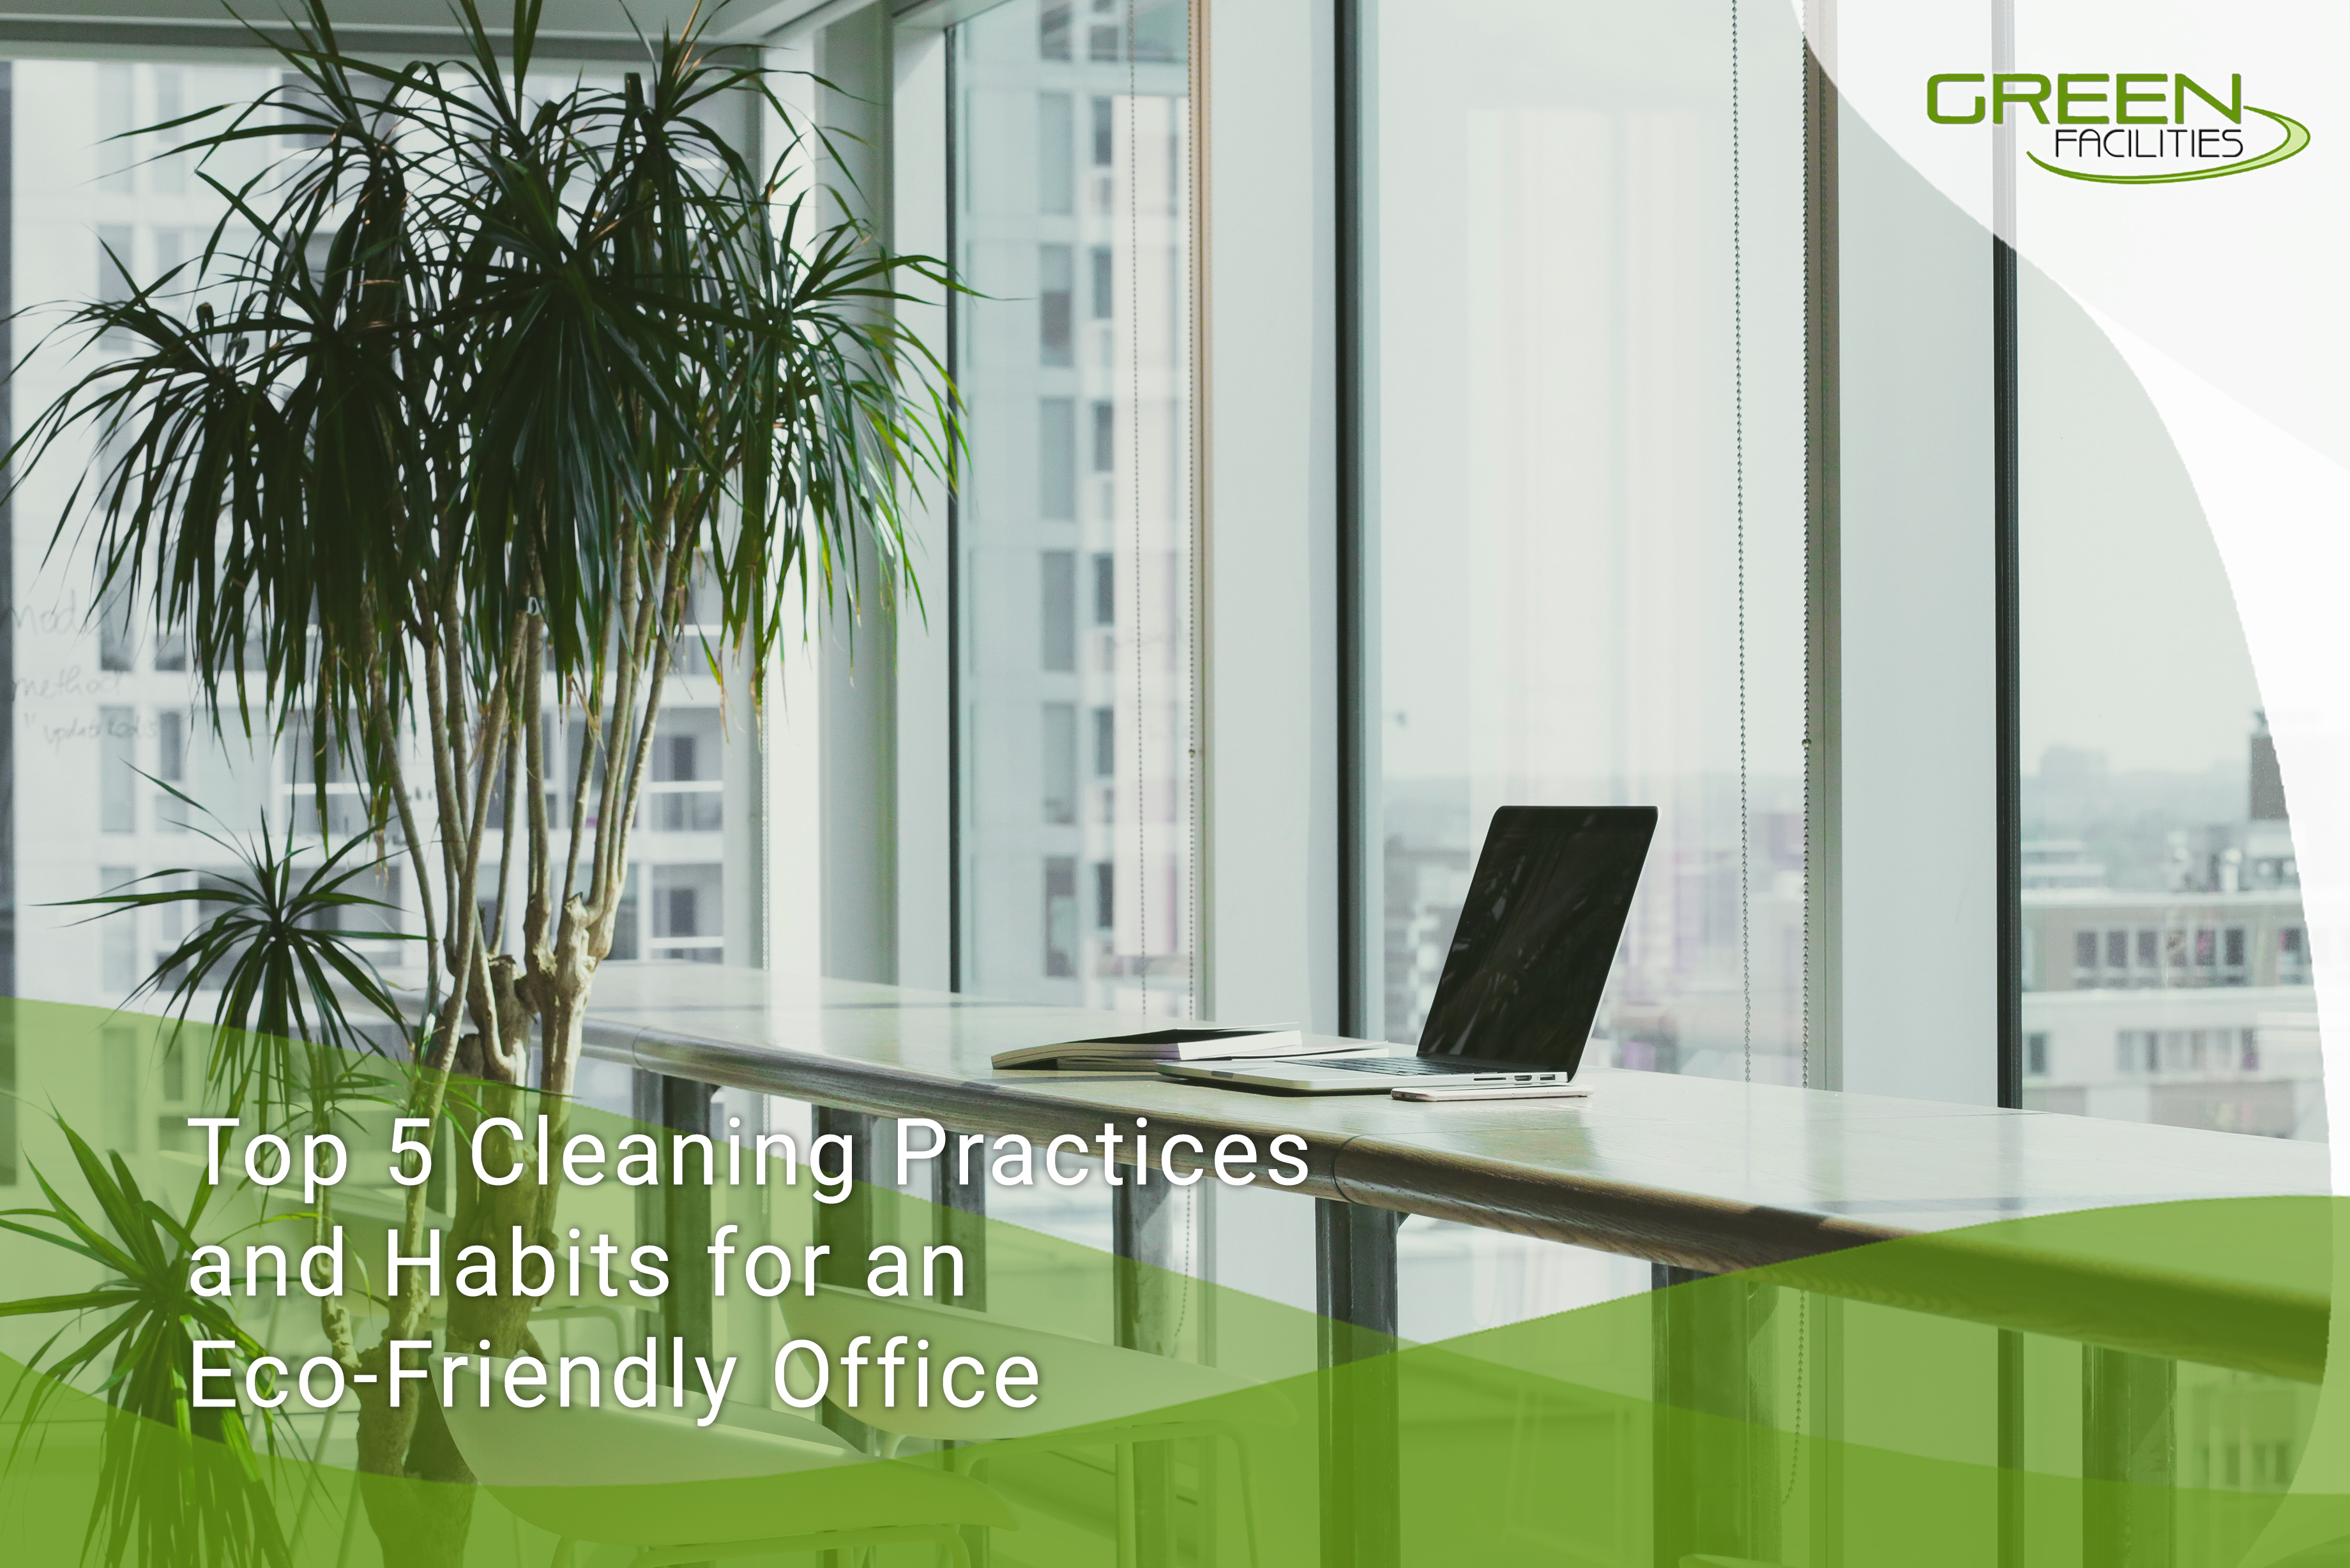 Top 5 Cleaning Practices and Habits for an Eco-Friendly Office